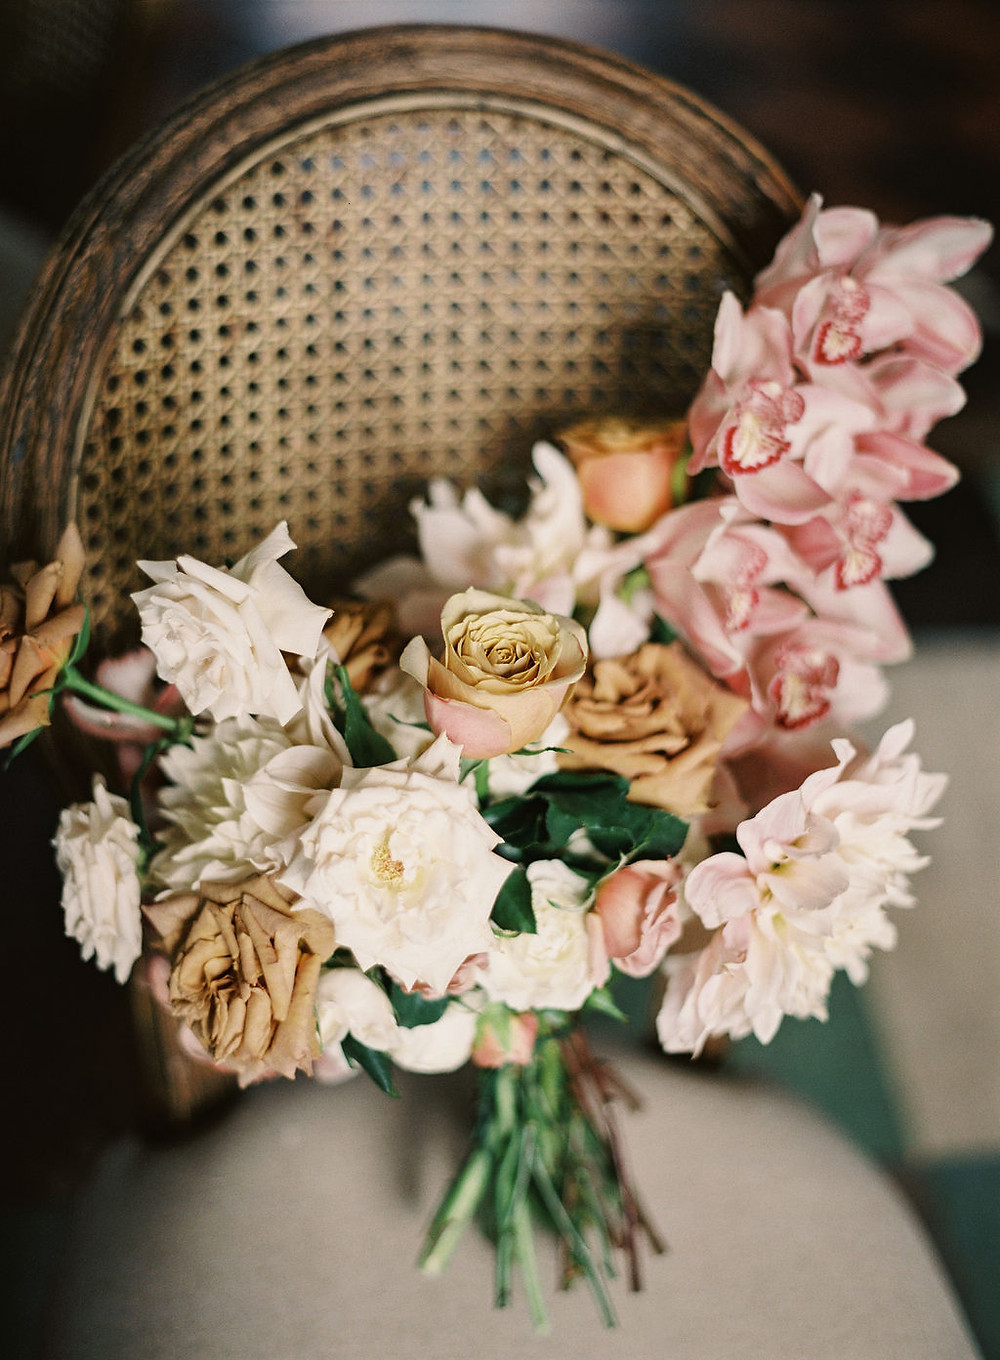 Bridal Bouquet on Barrett Louis Caned Chaired for Bridgerton Inspired Wedding at the Marigny Opera House in New Orleans with Lounge Spaces and Vintage Furniture by Lovegood Rentals